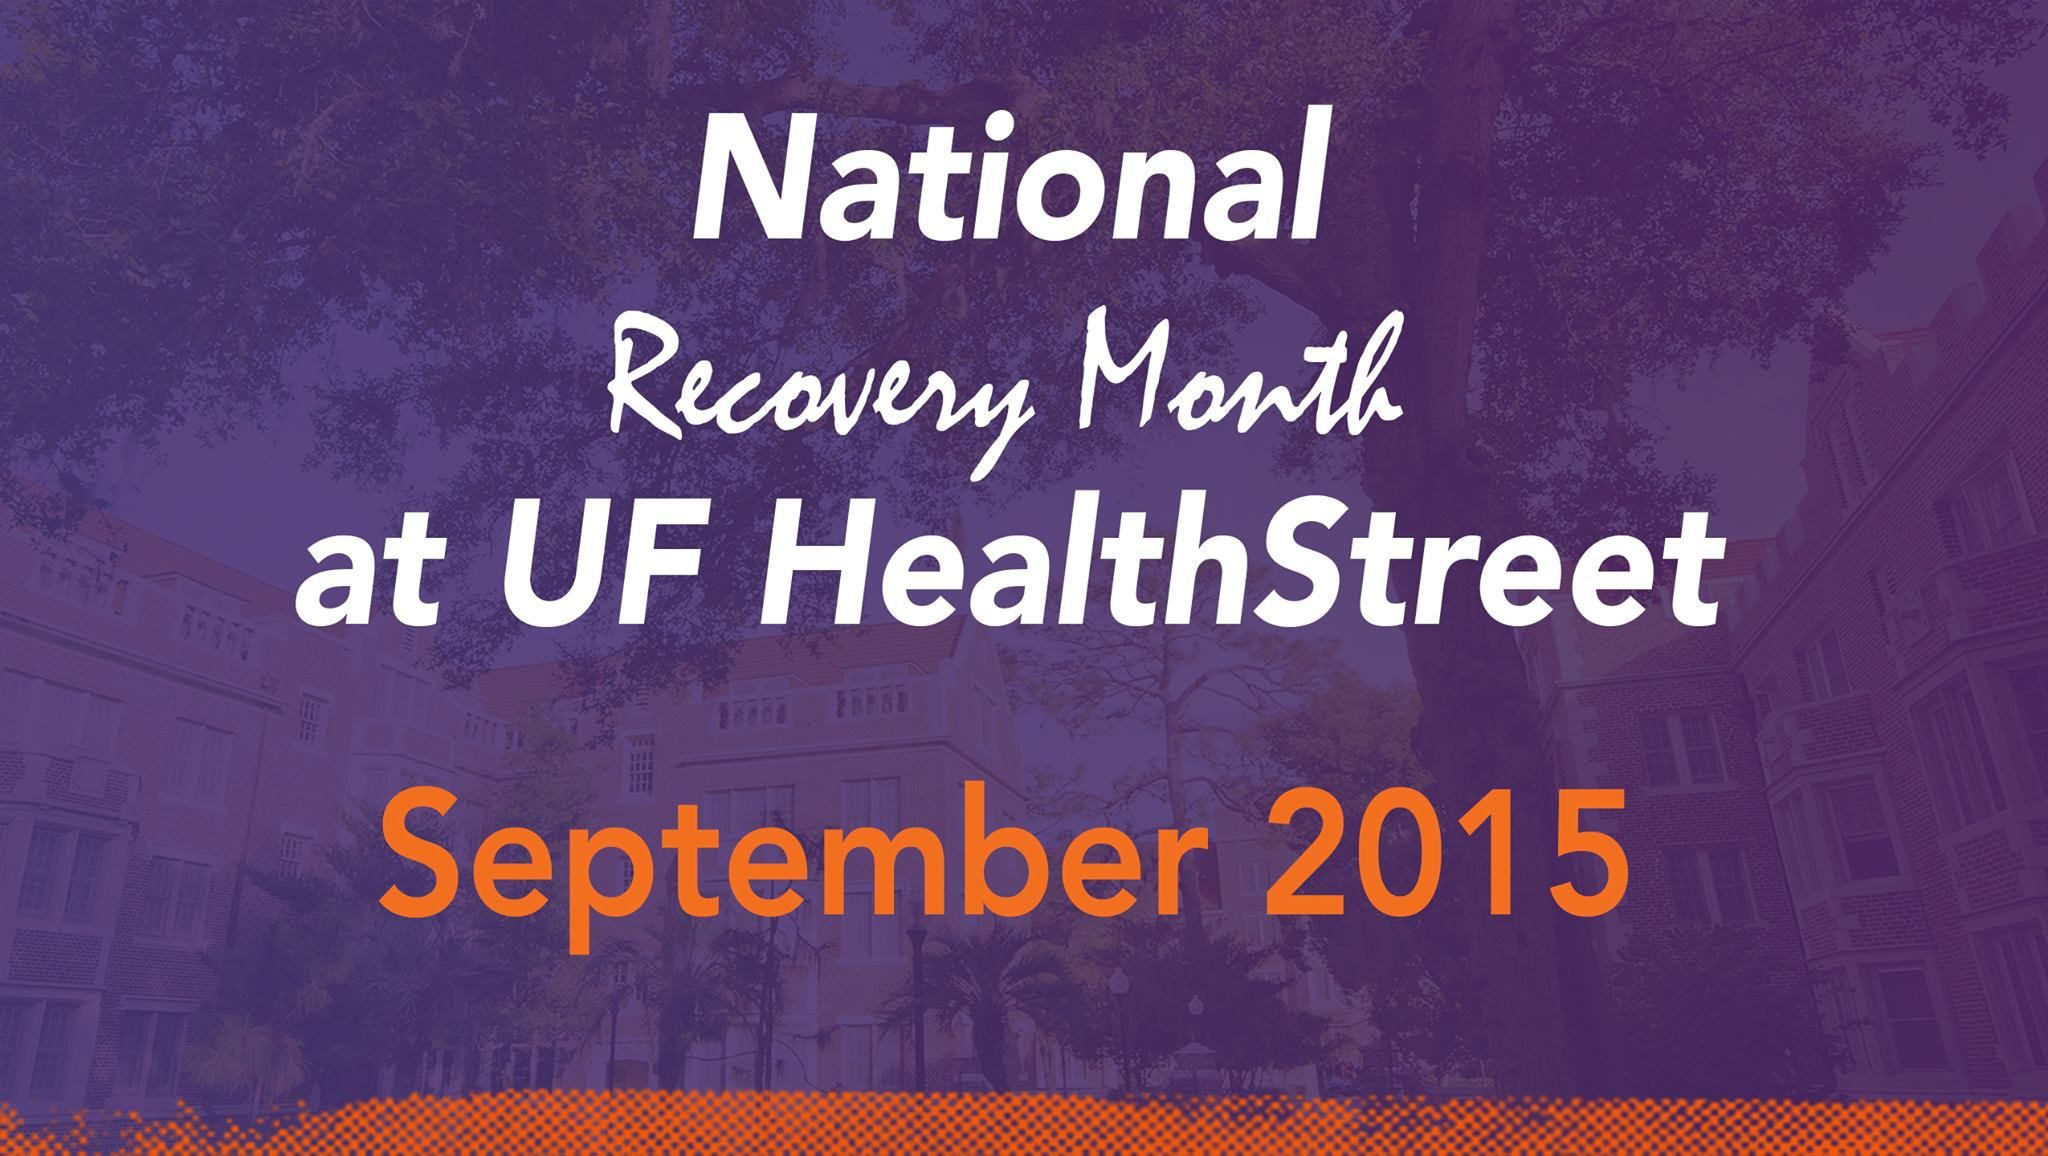 Recovery Month announcement